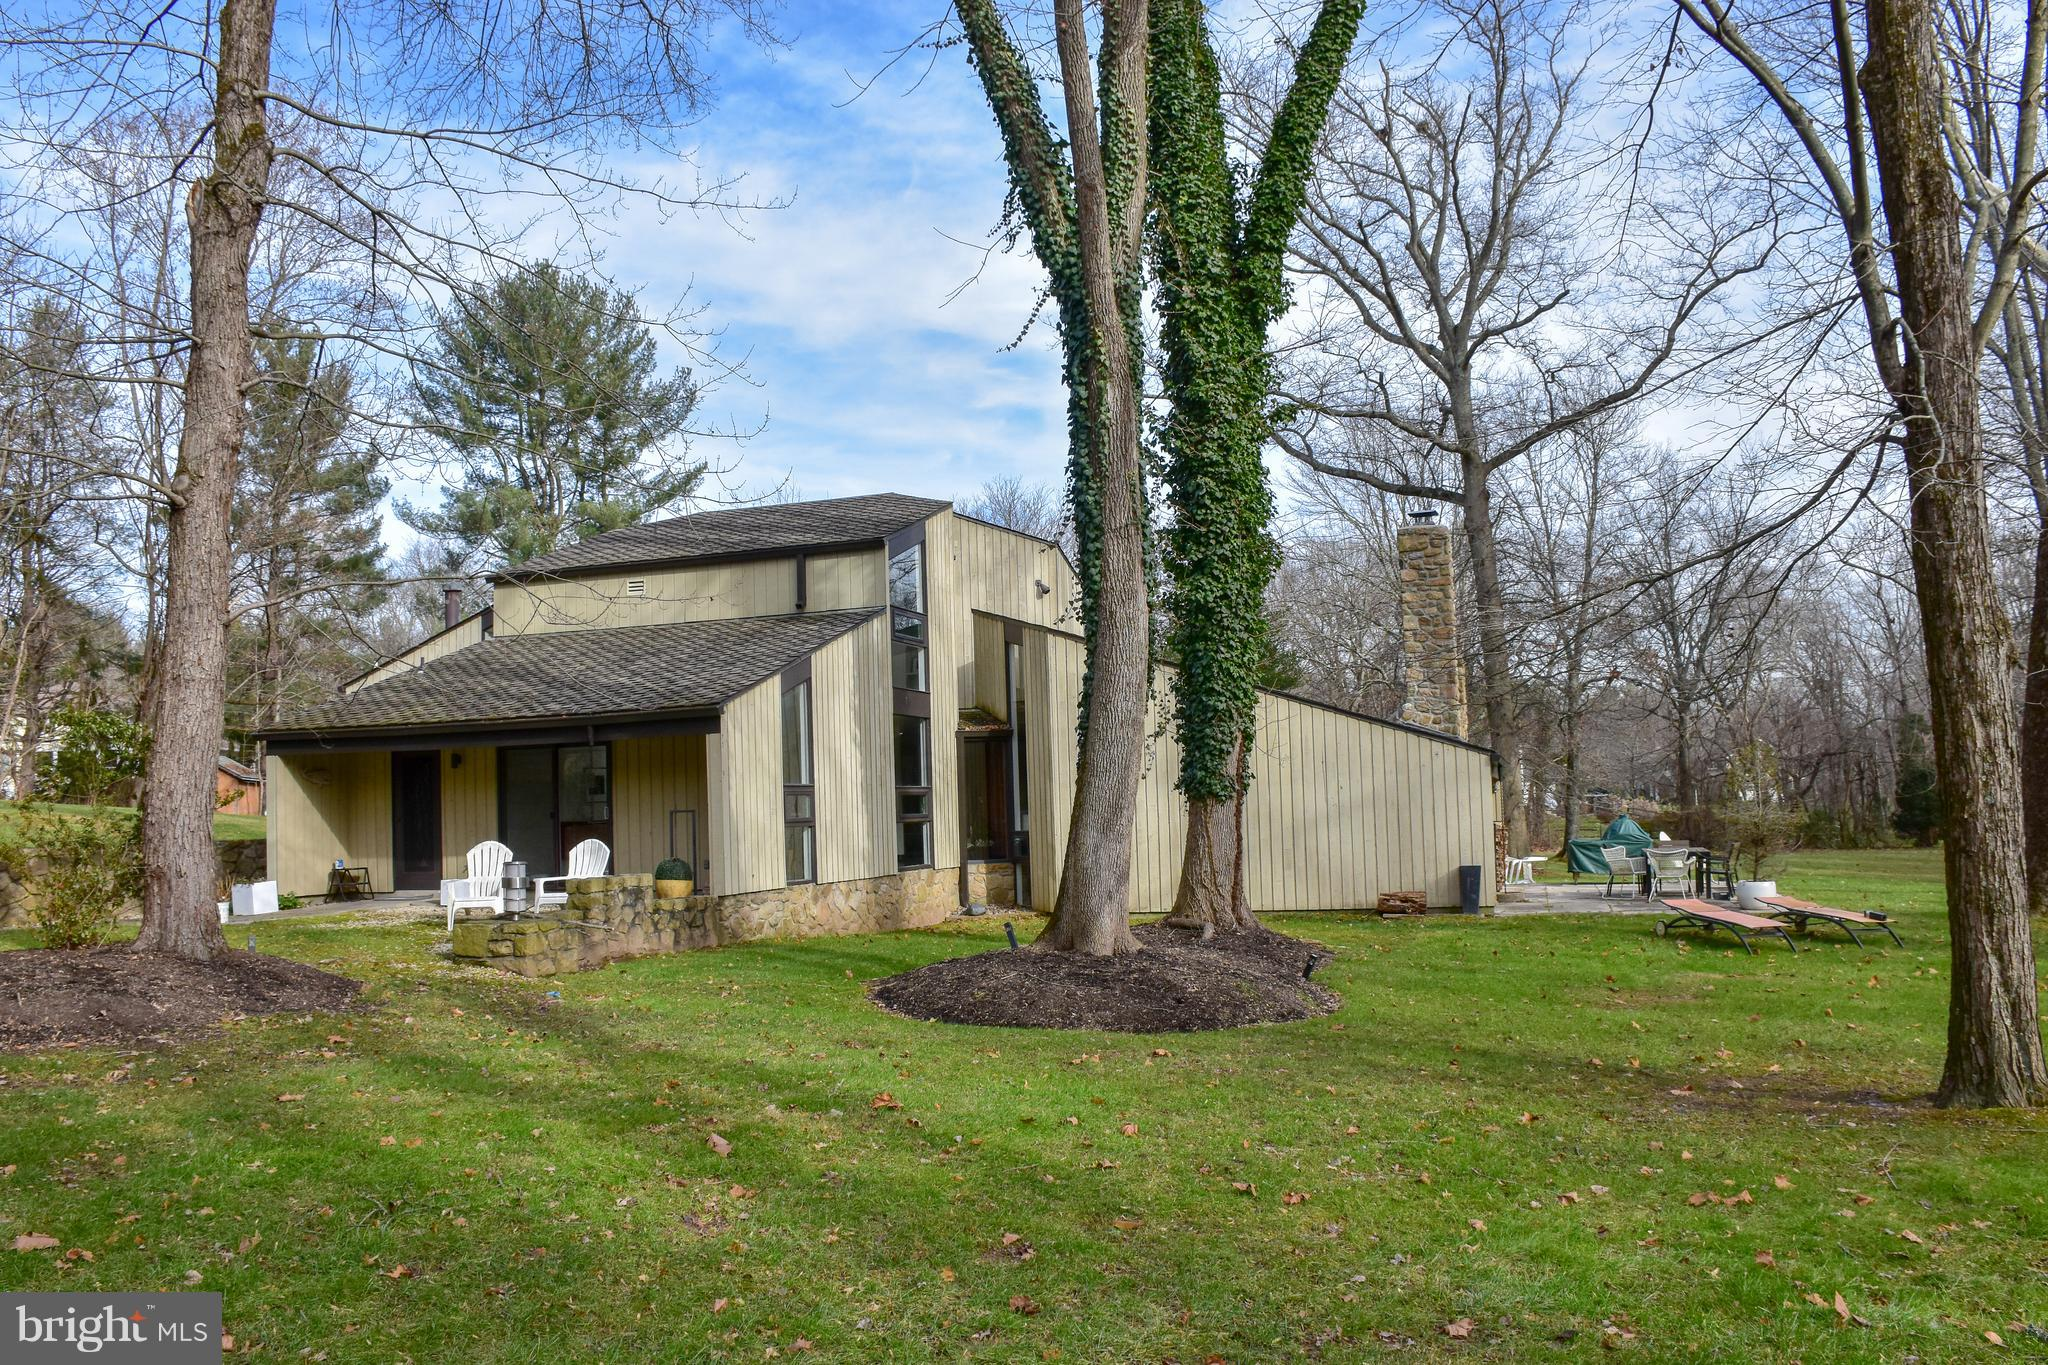 7010 SHEAFF LANE, FORT WASHINGTON, PA 19034